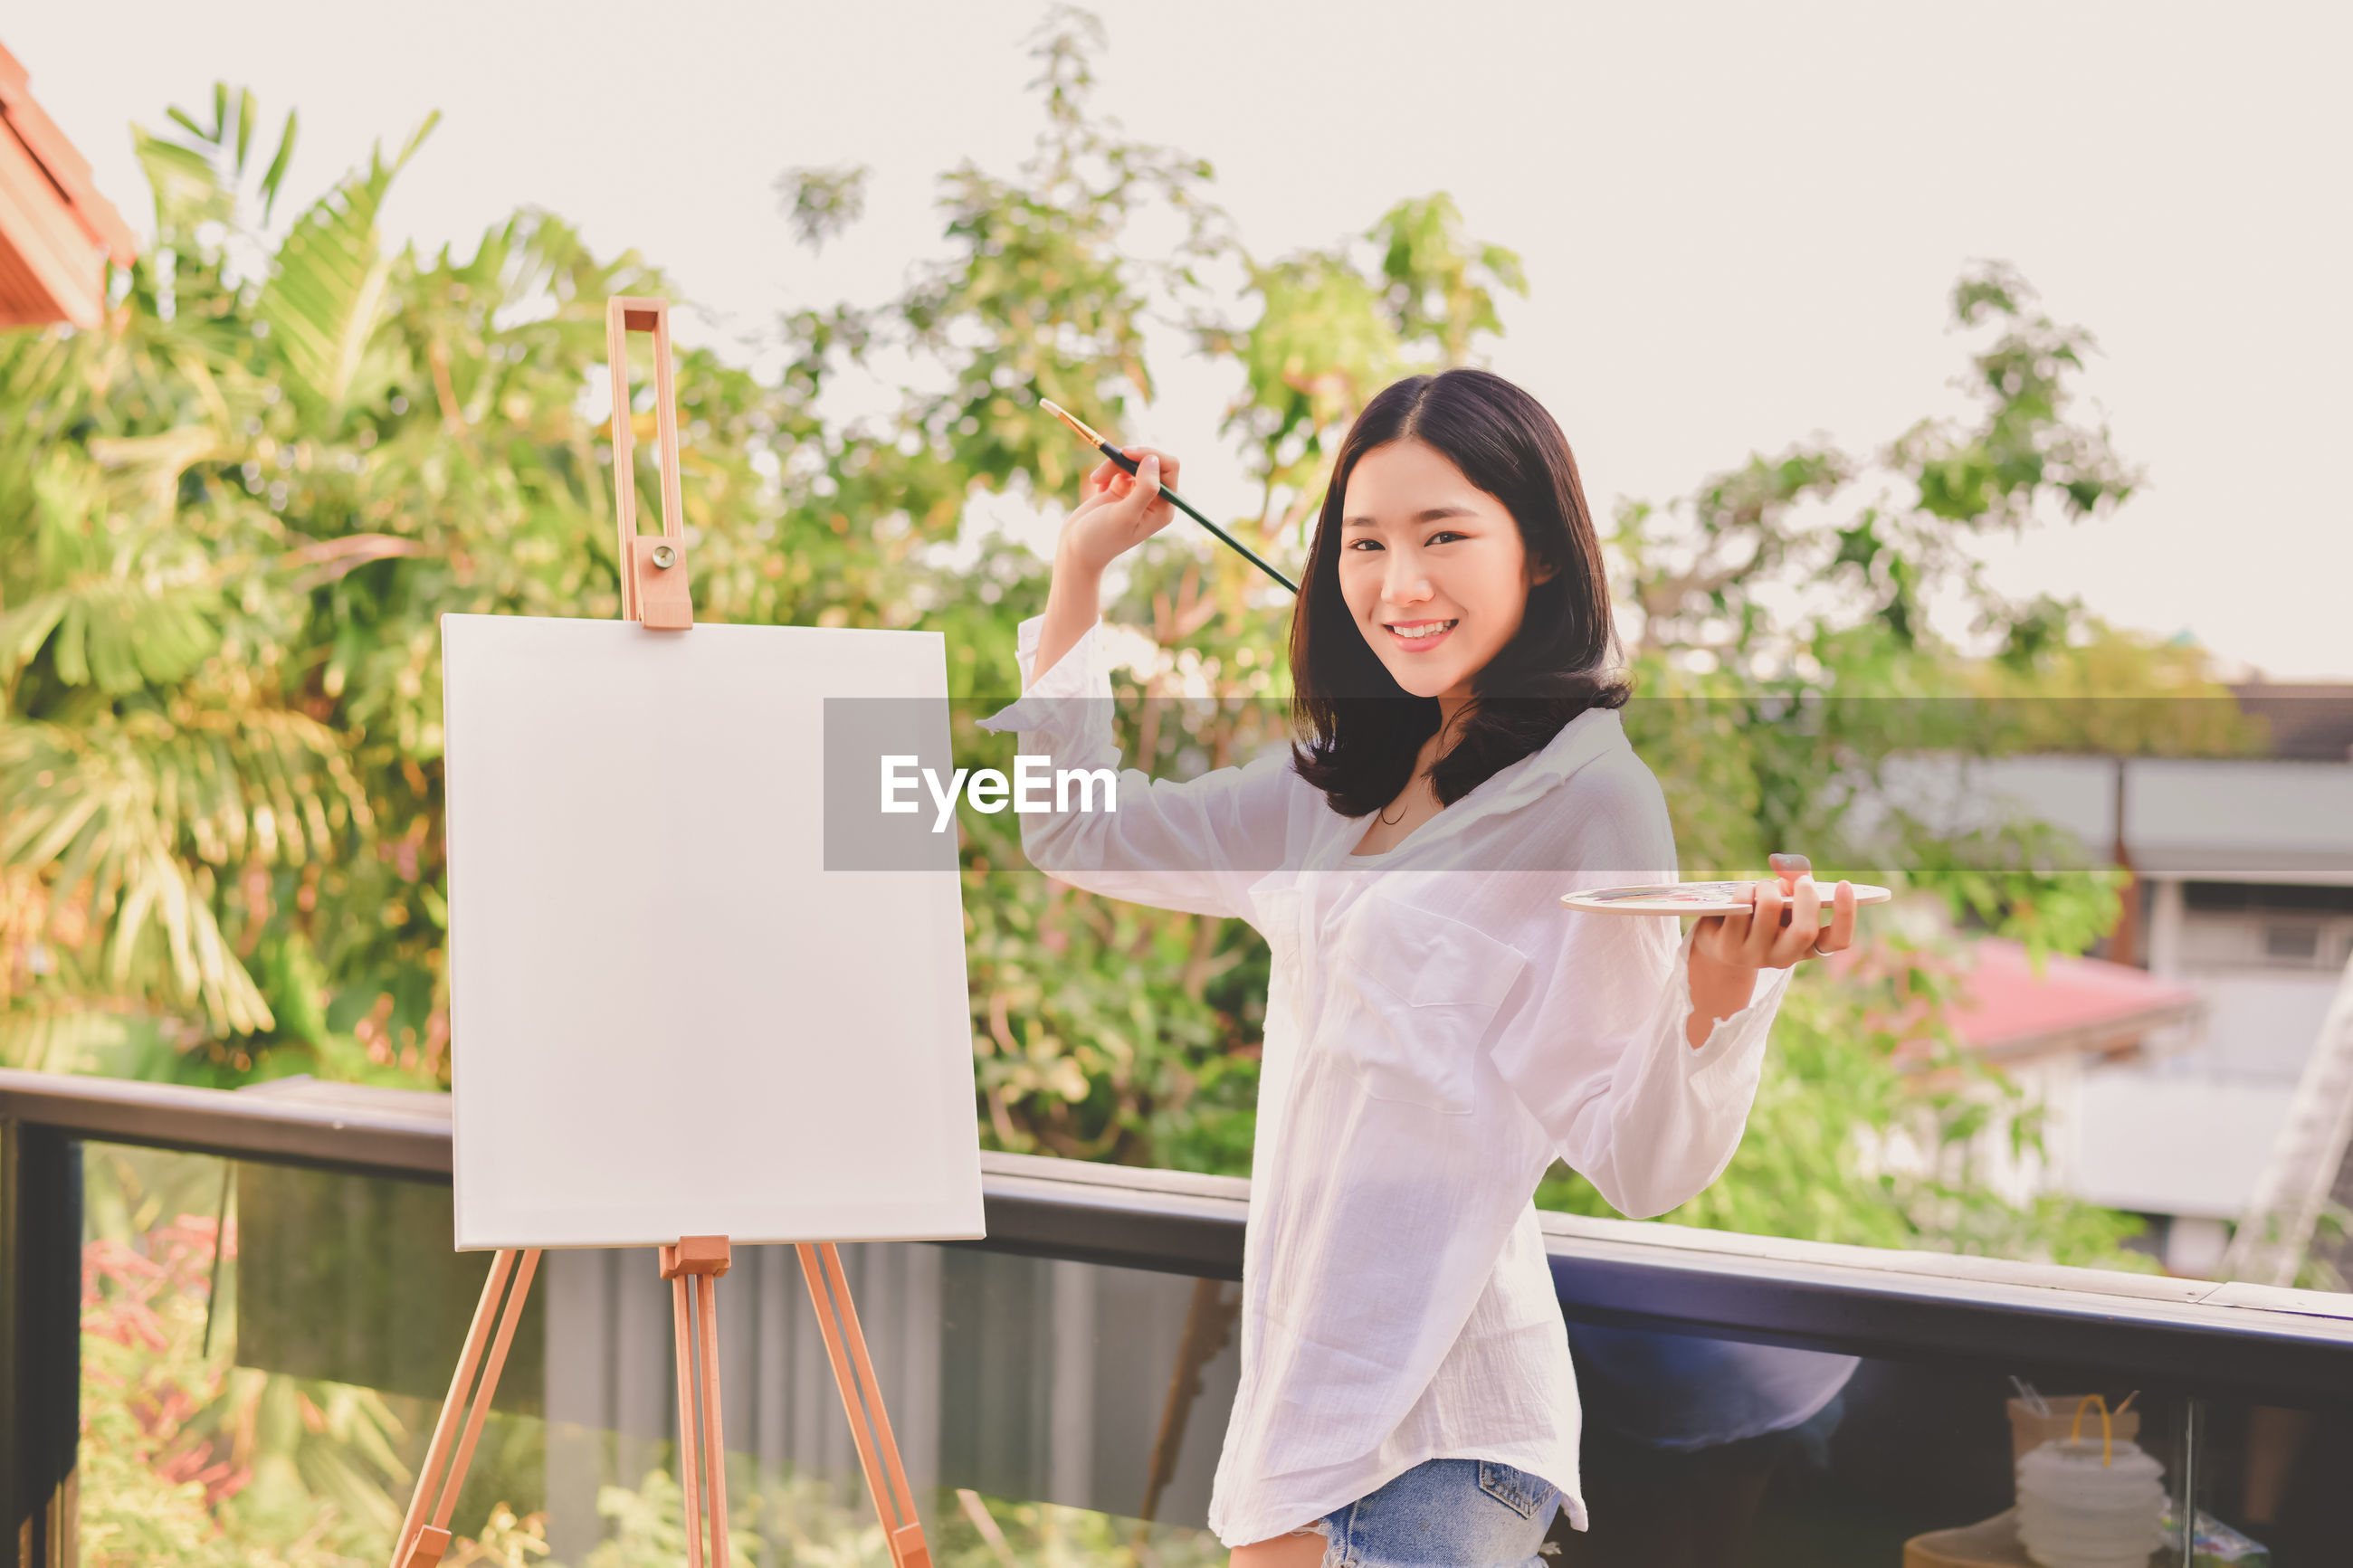 Portrait of smiling woman standing by canvas against sky